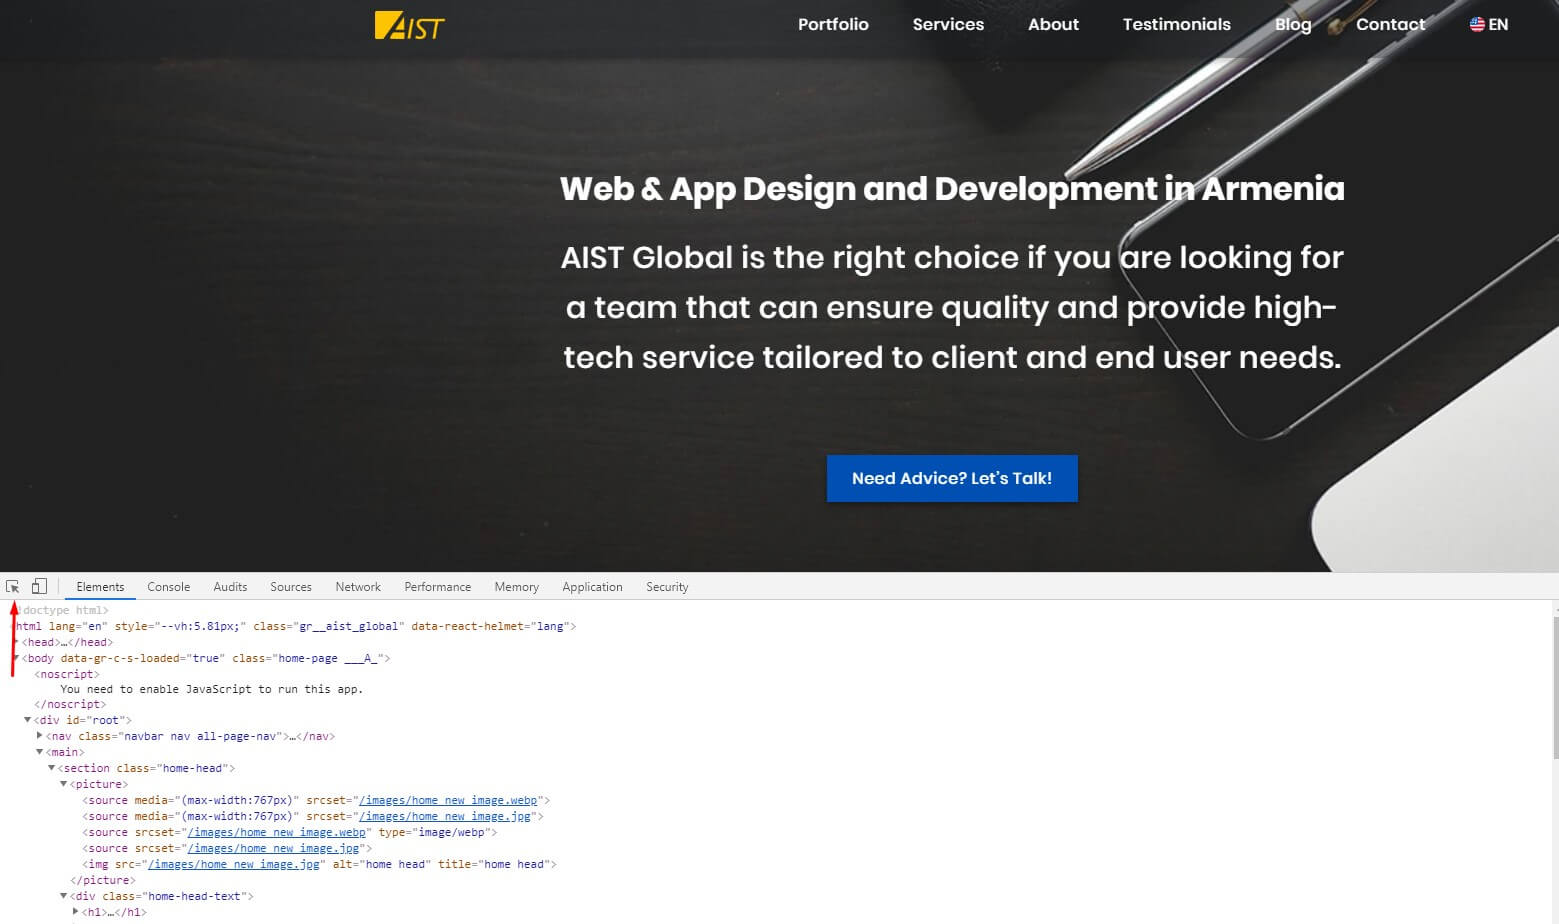 Inspect site texts - How to Check Website Quality